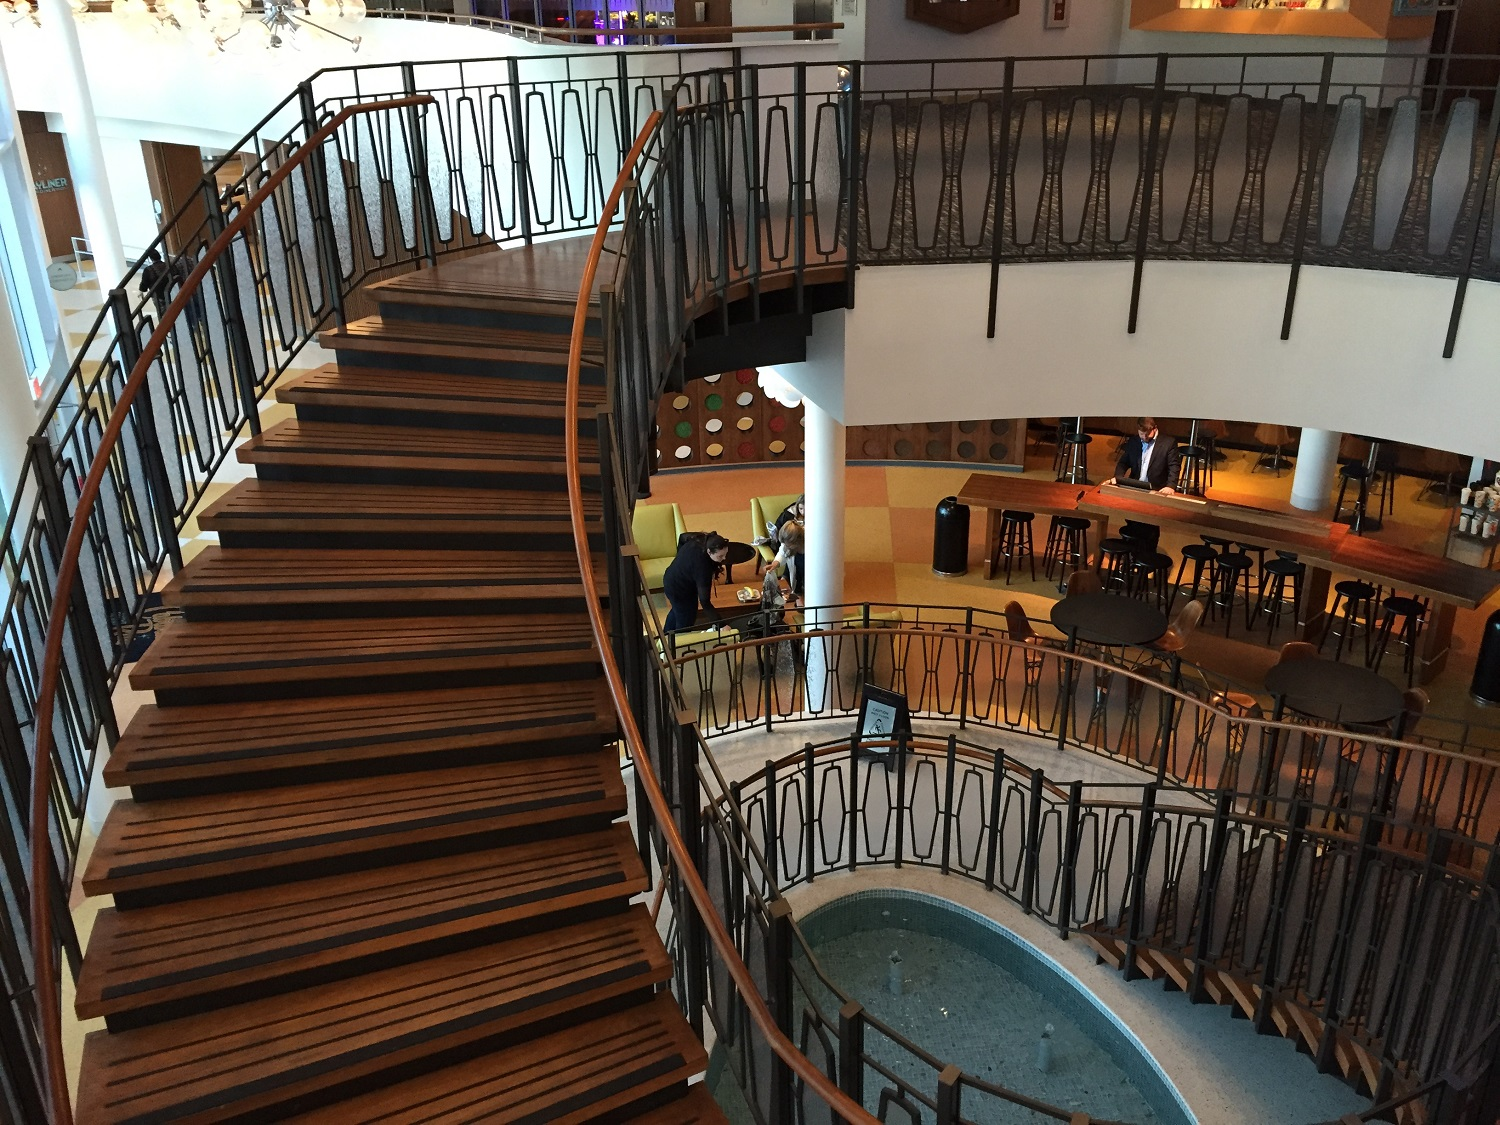 Staircase to the Second Floor of Cabana Bay